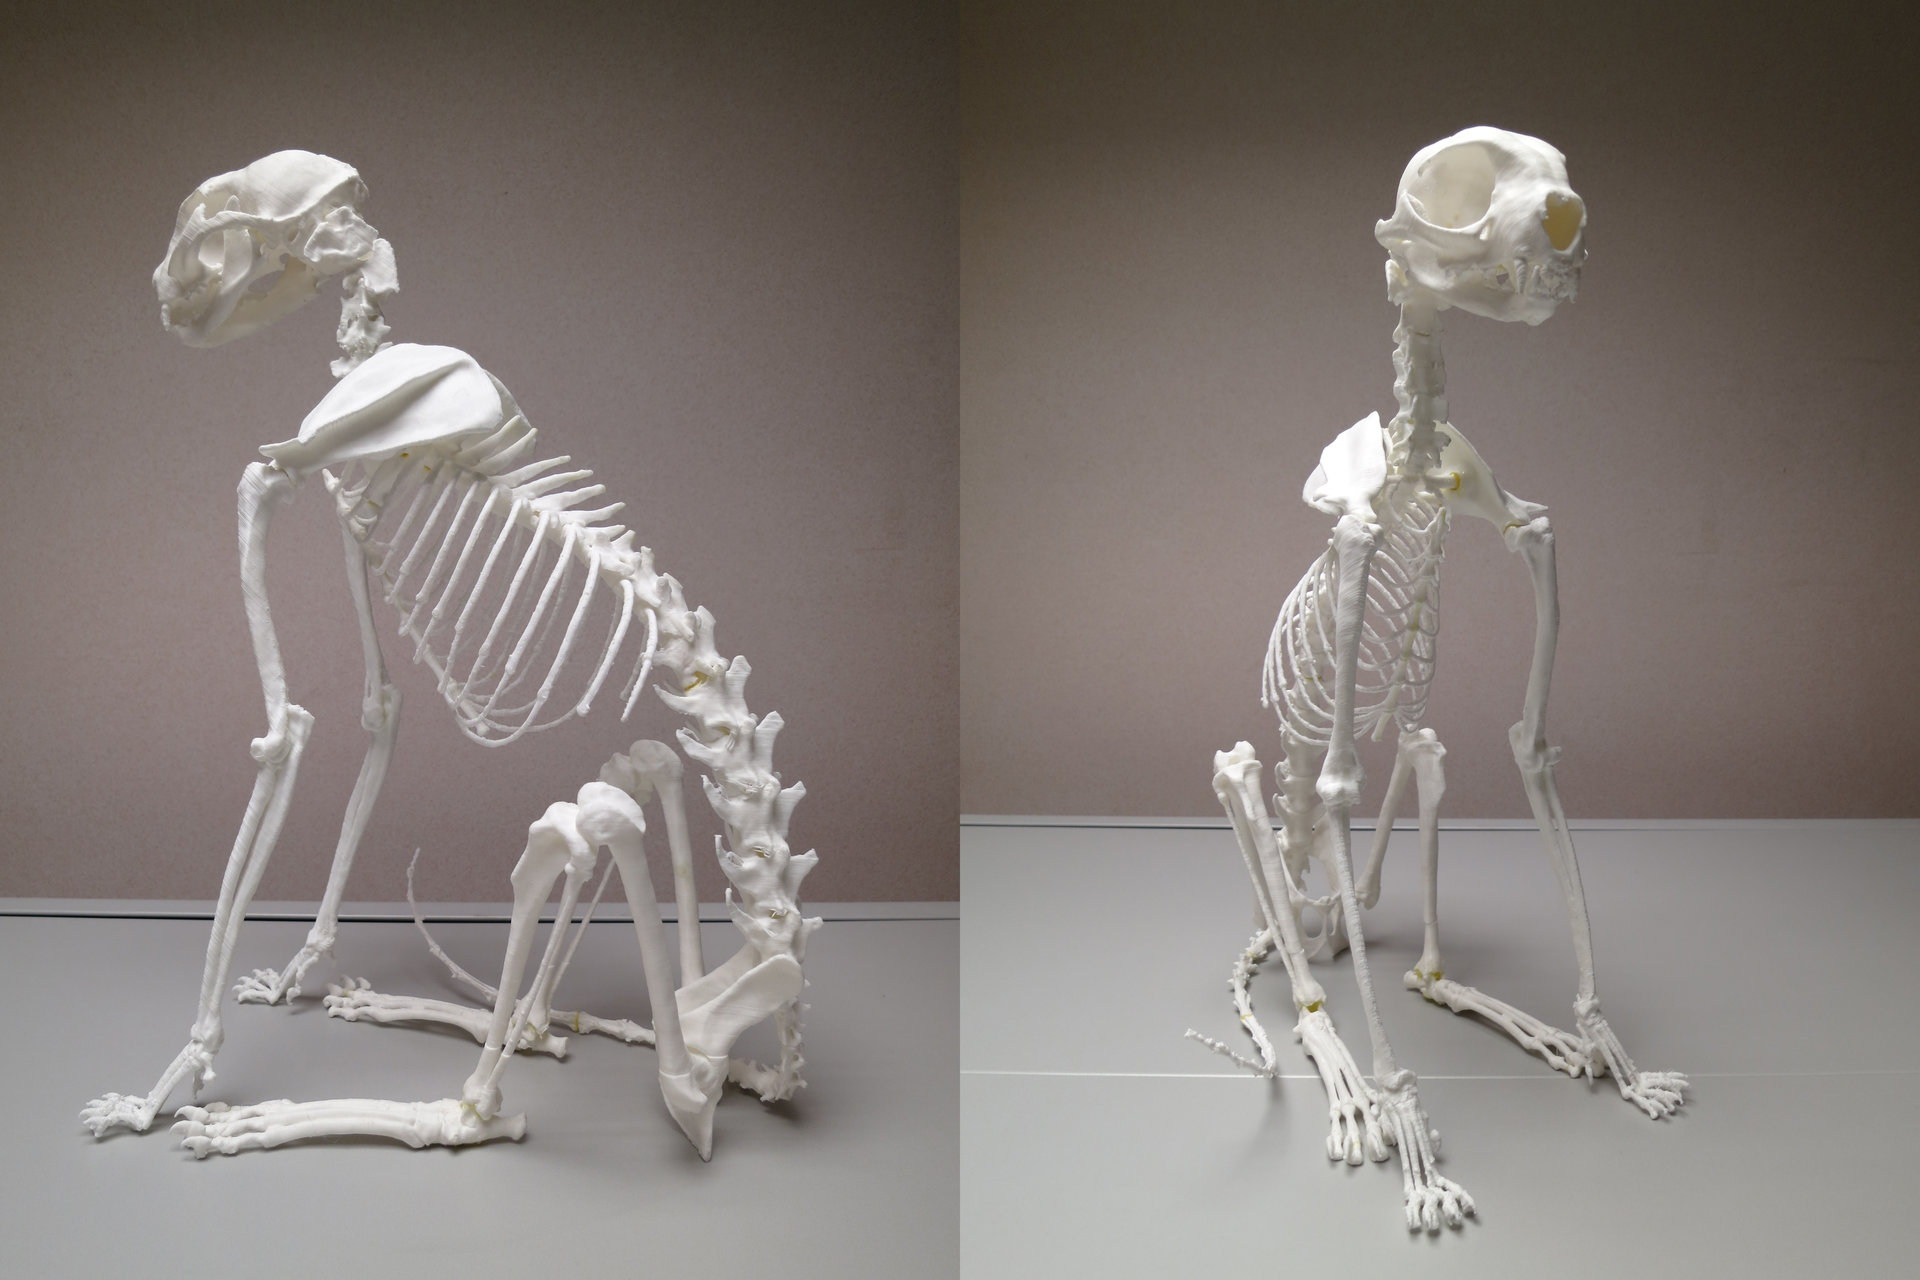 jonathan seeney - 3d printed cat skeleton